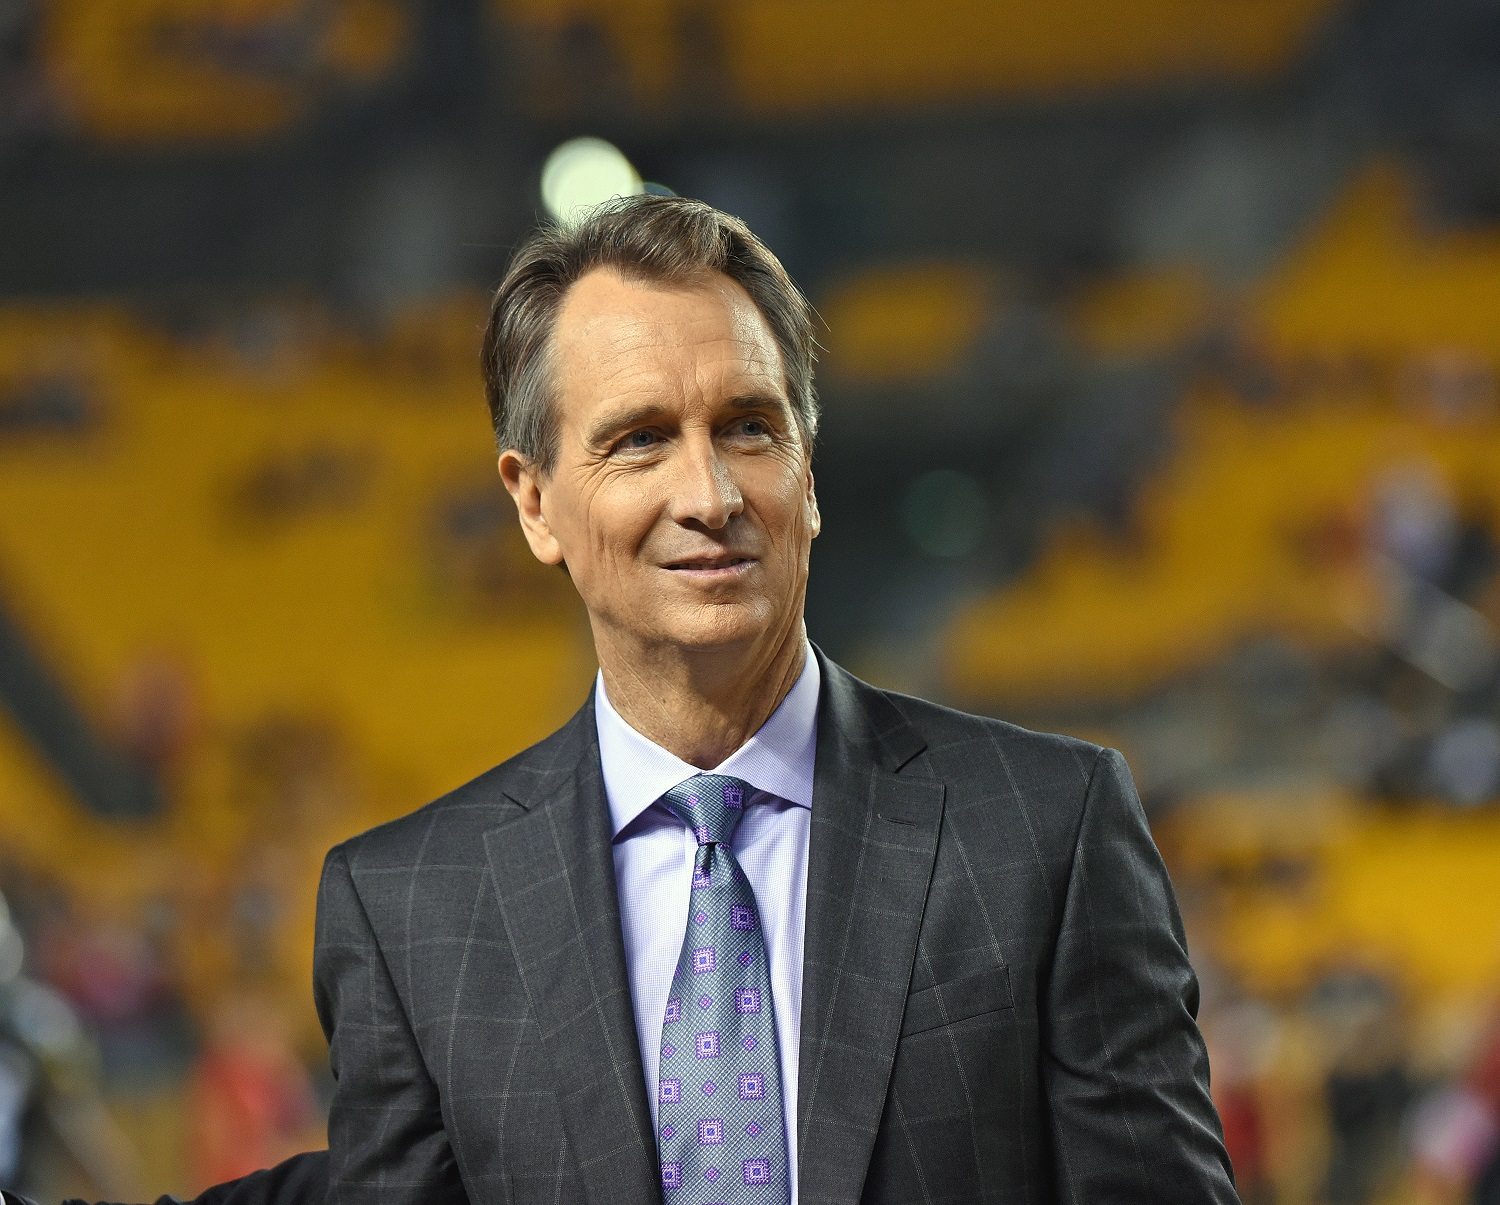 Cris Collinsworth explains why 49ers' 2020 season has gone ... |Cris Collinsworth